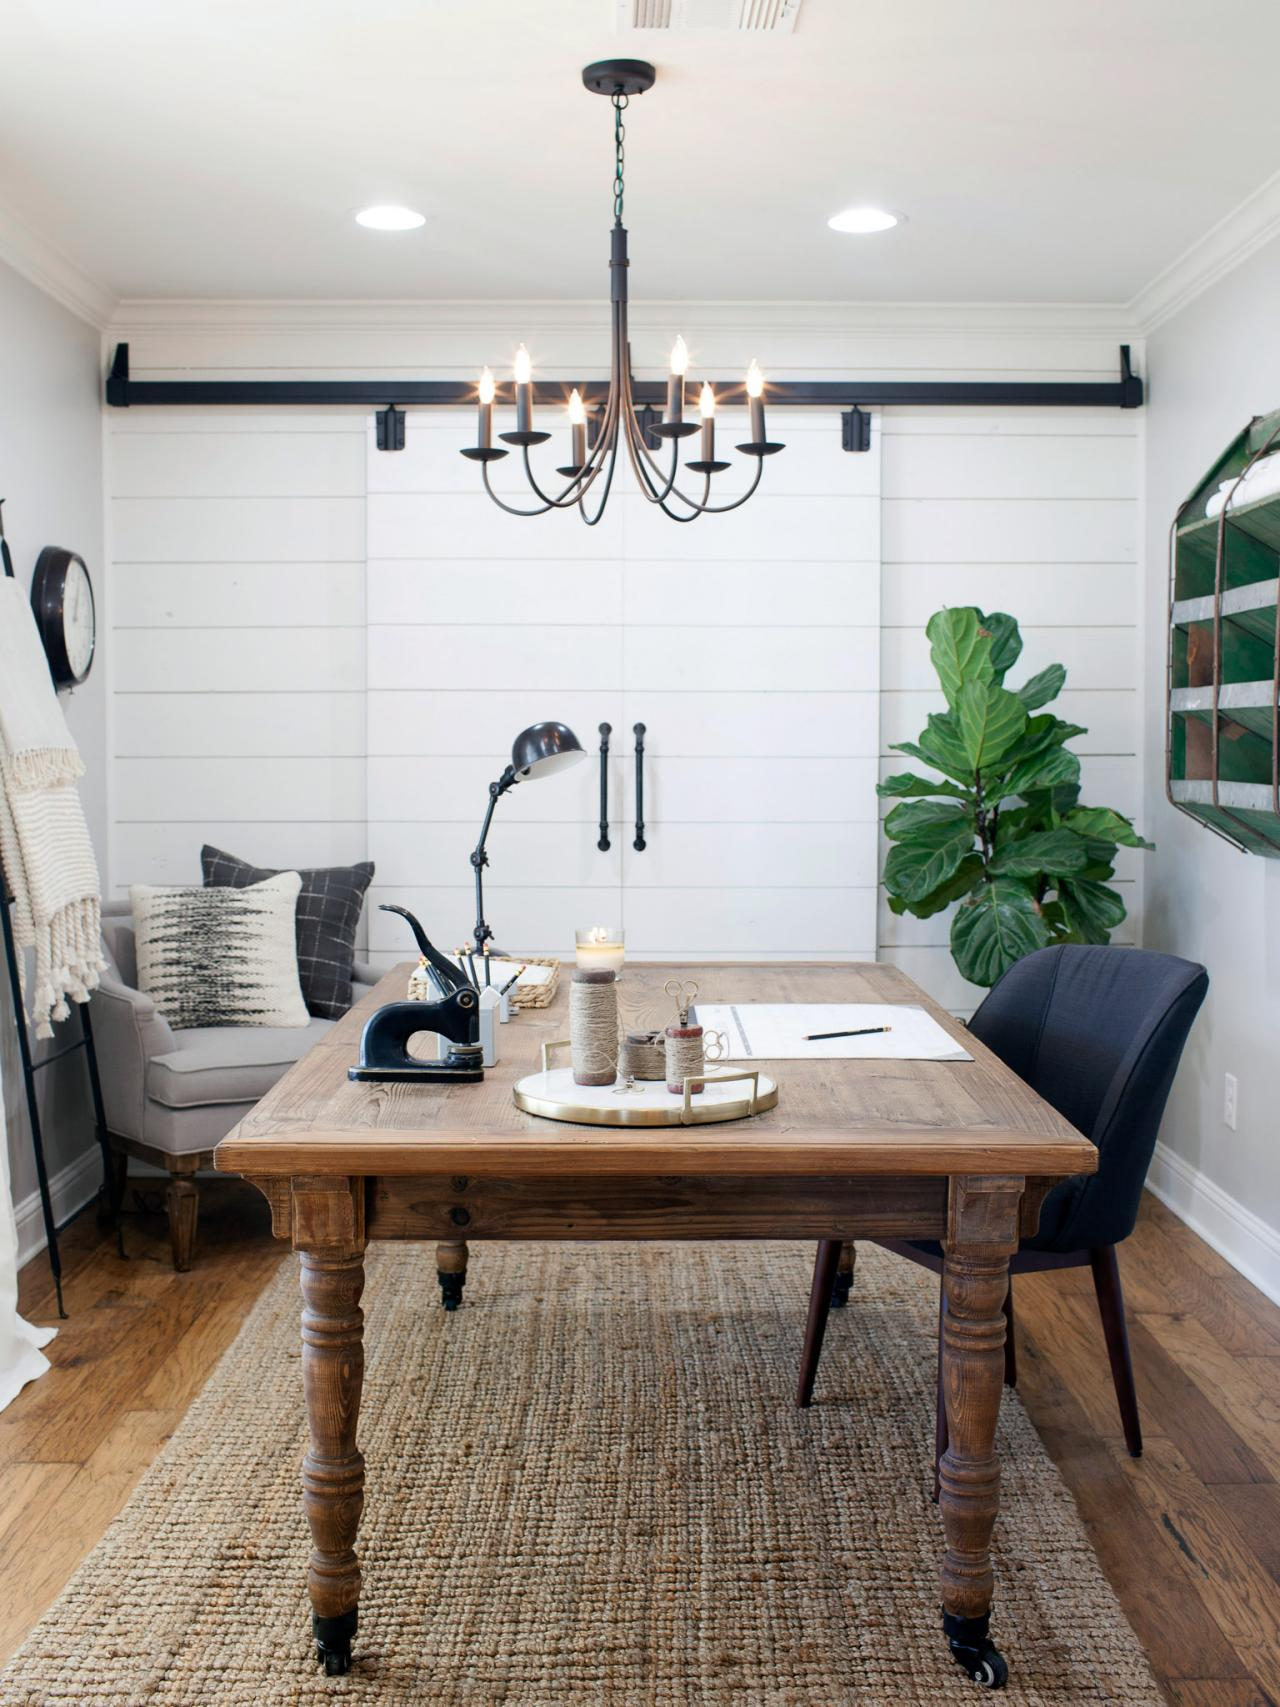 How to Use Shiplap in Every Room of Your Home | HGTV\'s Decorating ...